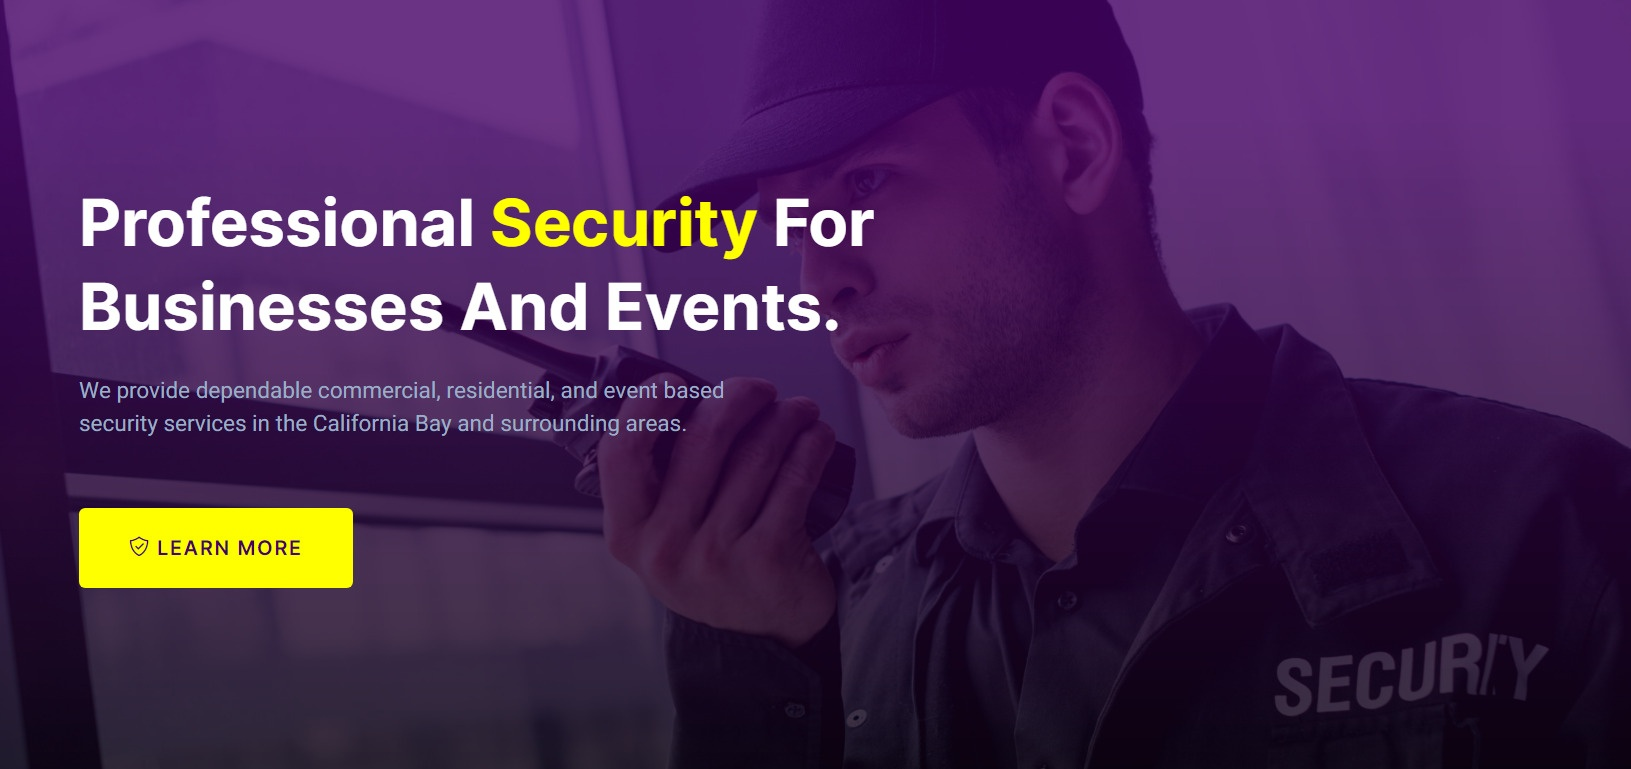 Five Star Security & Event Staffing - Sacramento CA on Echelon Local | Providing dependable commercial security, residential security, private security, and event based security services in the California Bay and surrounding areas.